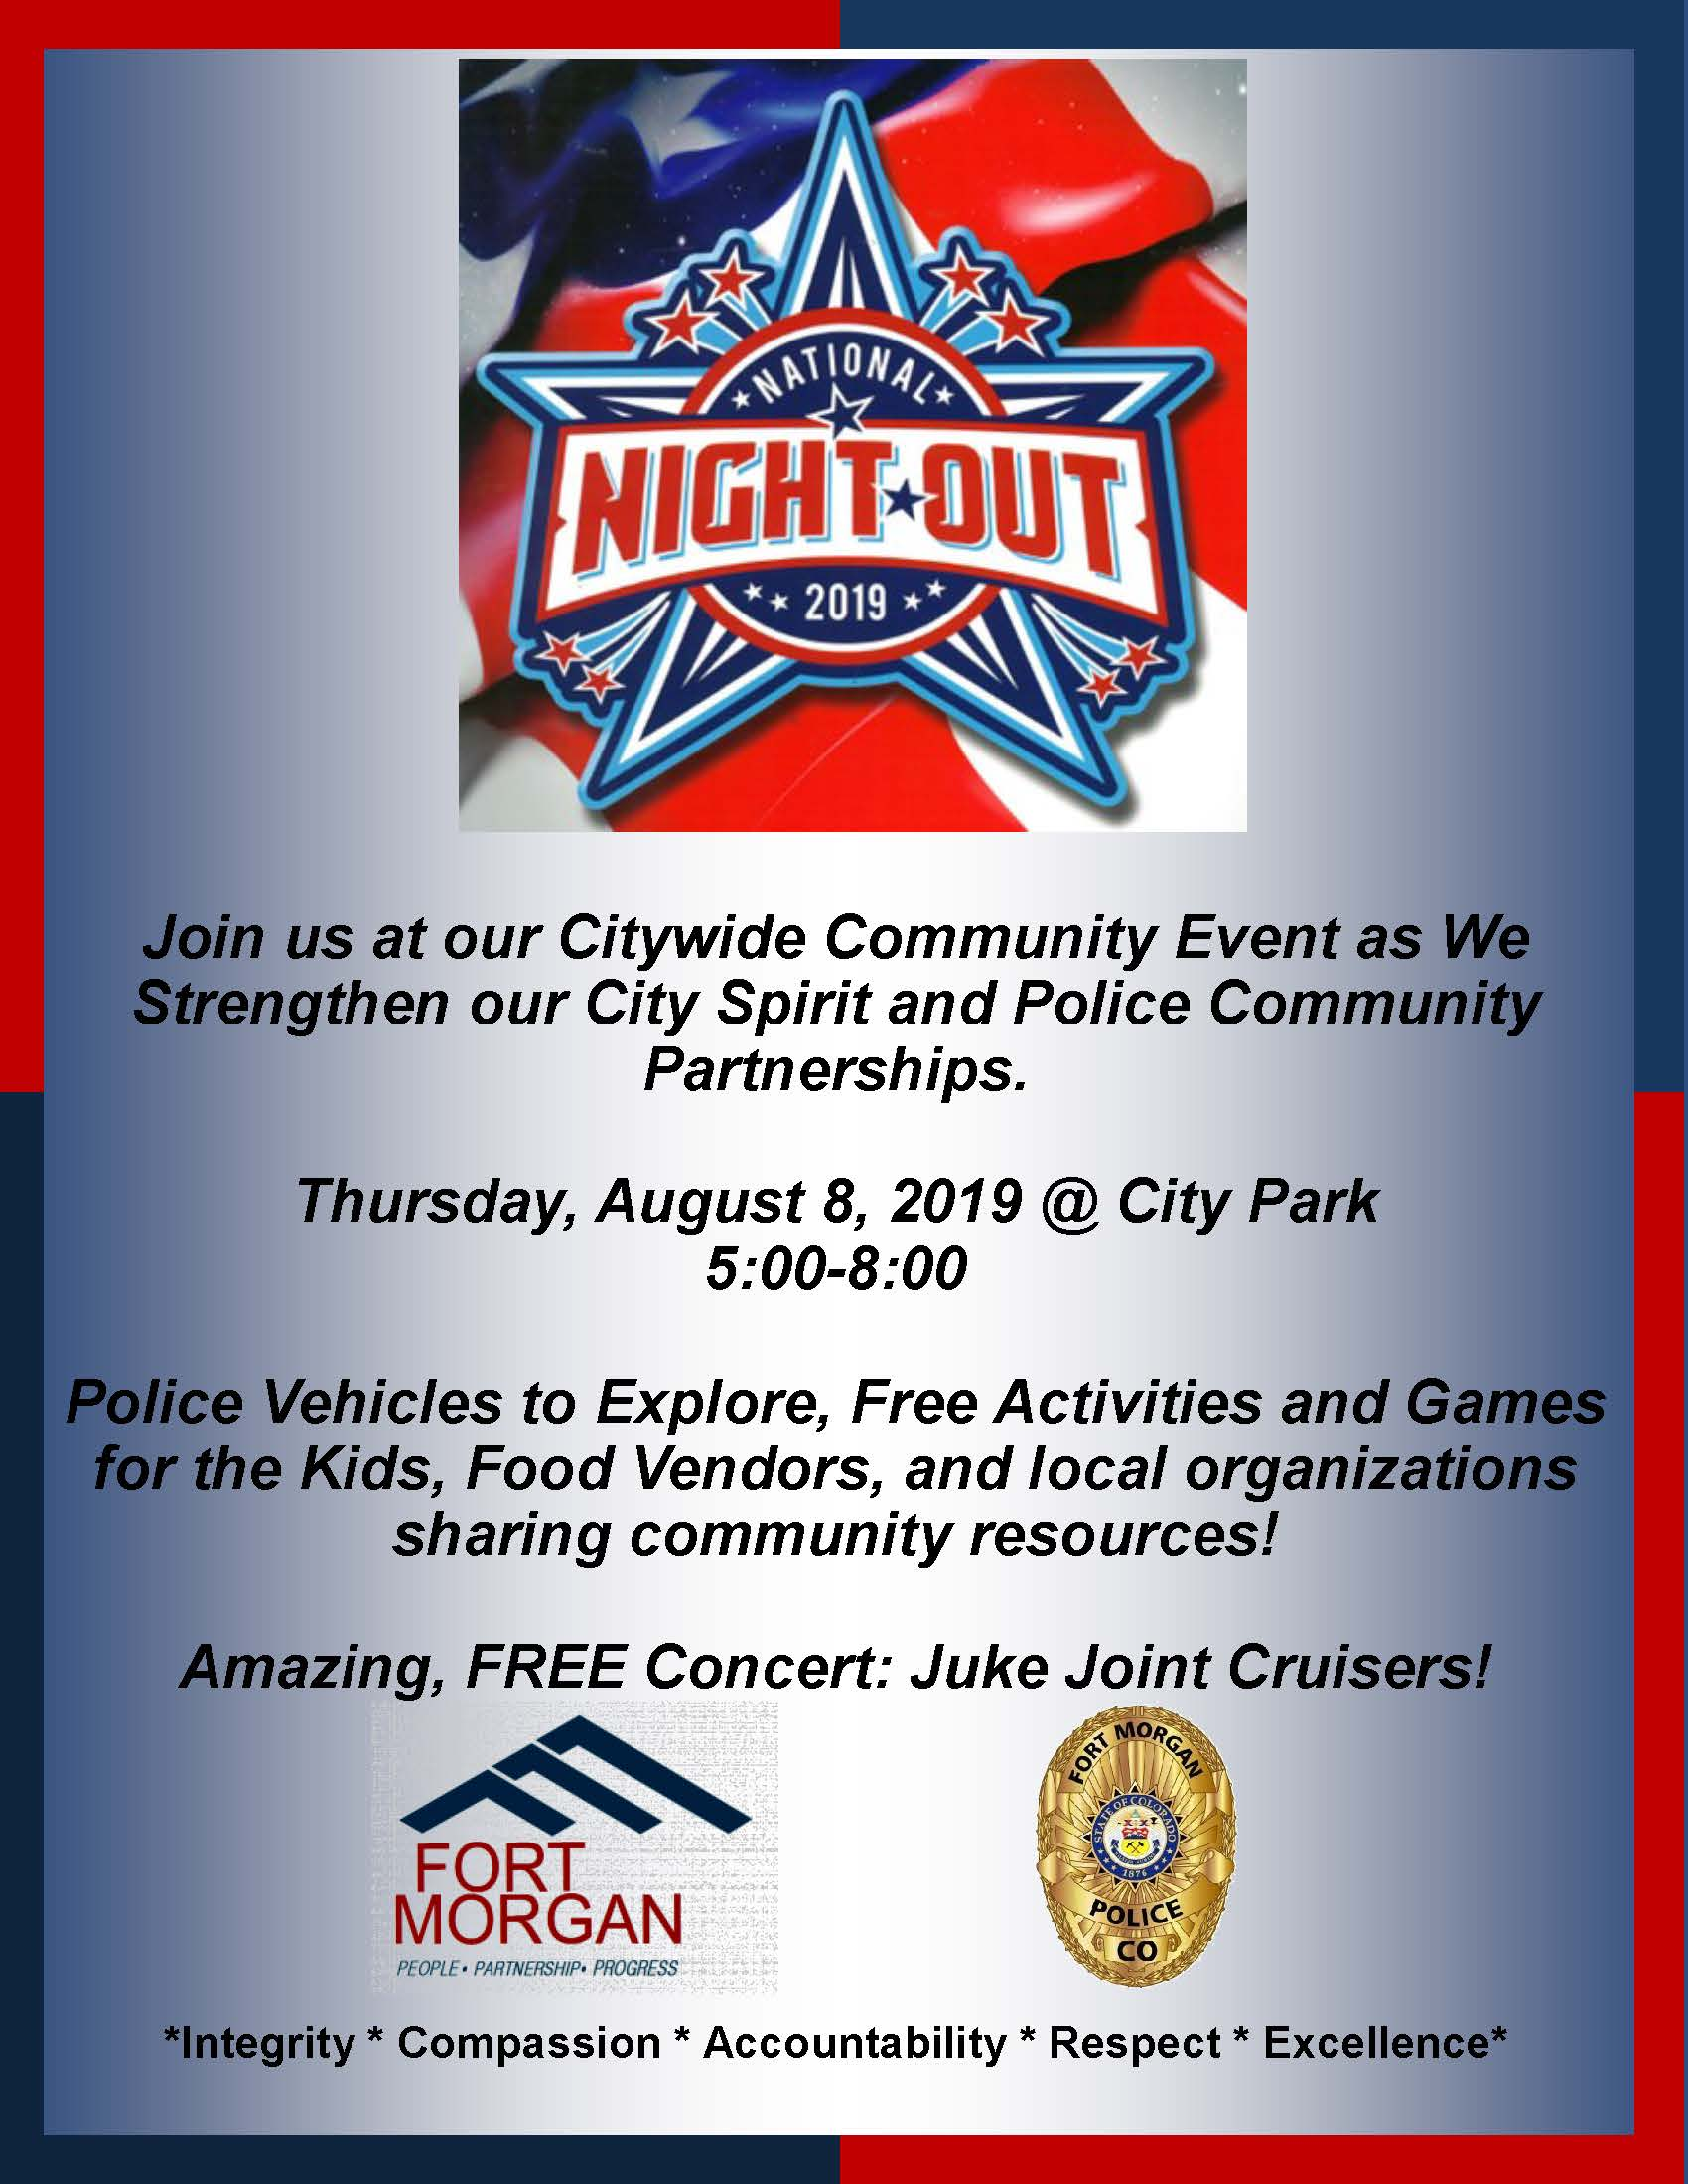 National Night Out Flier 2019 (3)